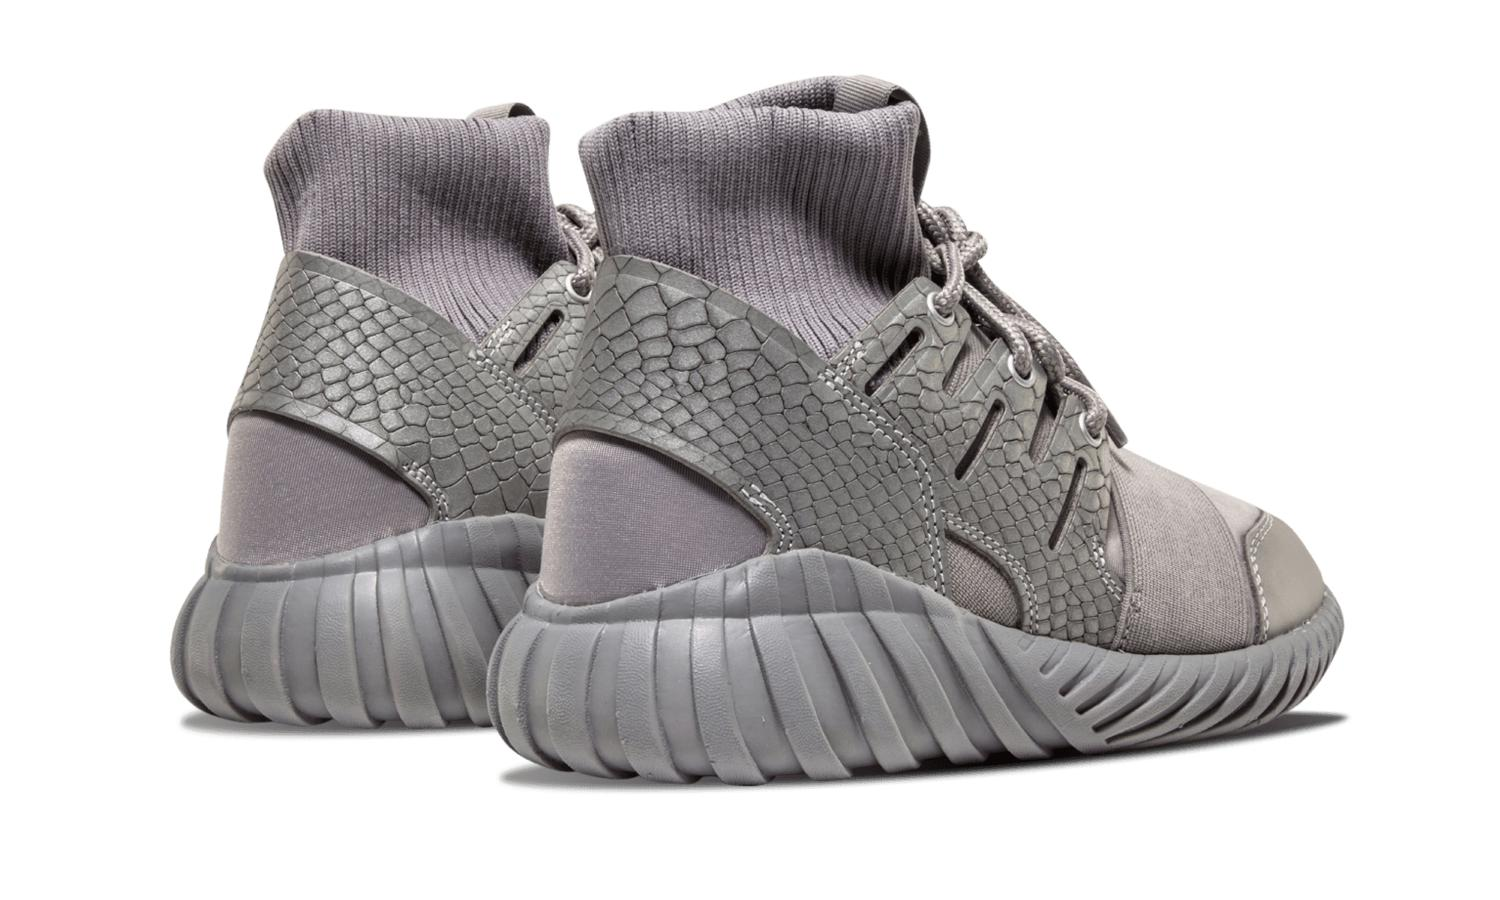 99325d509e3c ... italy lyst adidas tubular doom luxe textile s74791 in gray for men  5dfae 7ae09